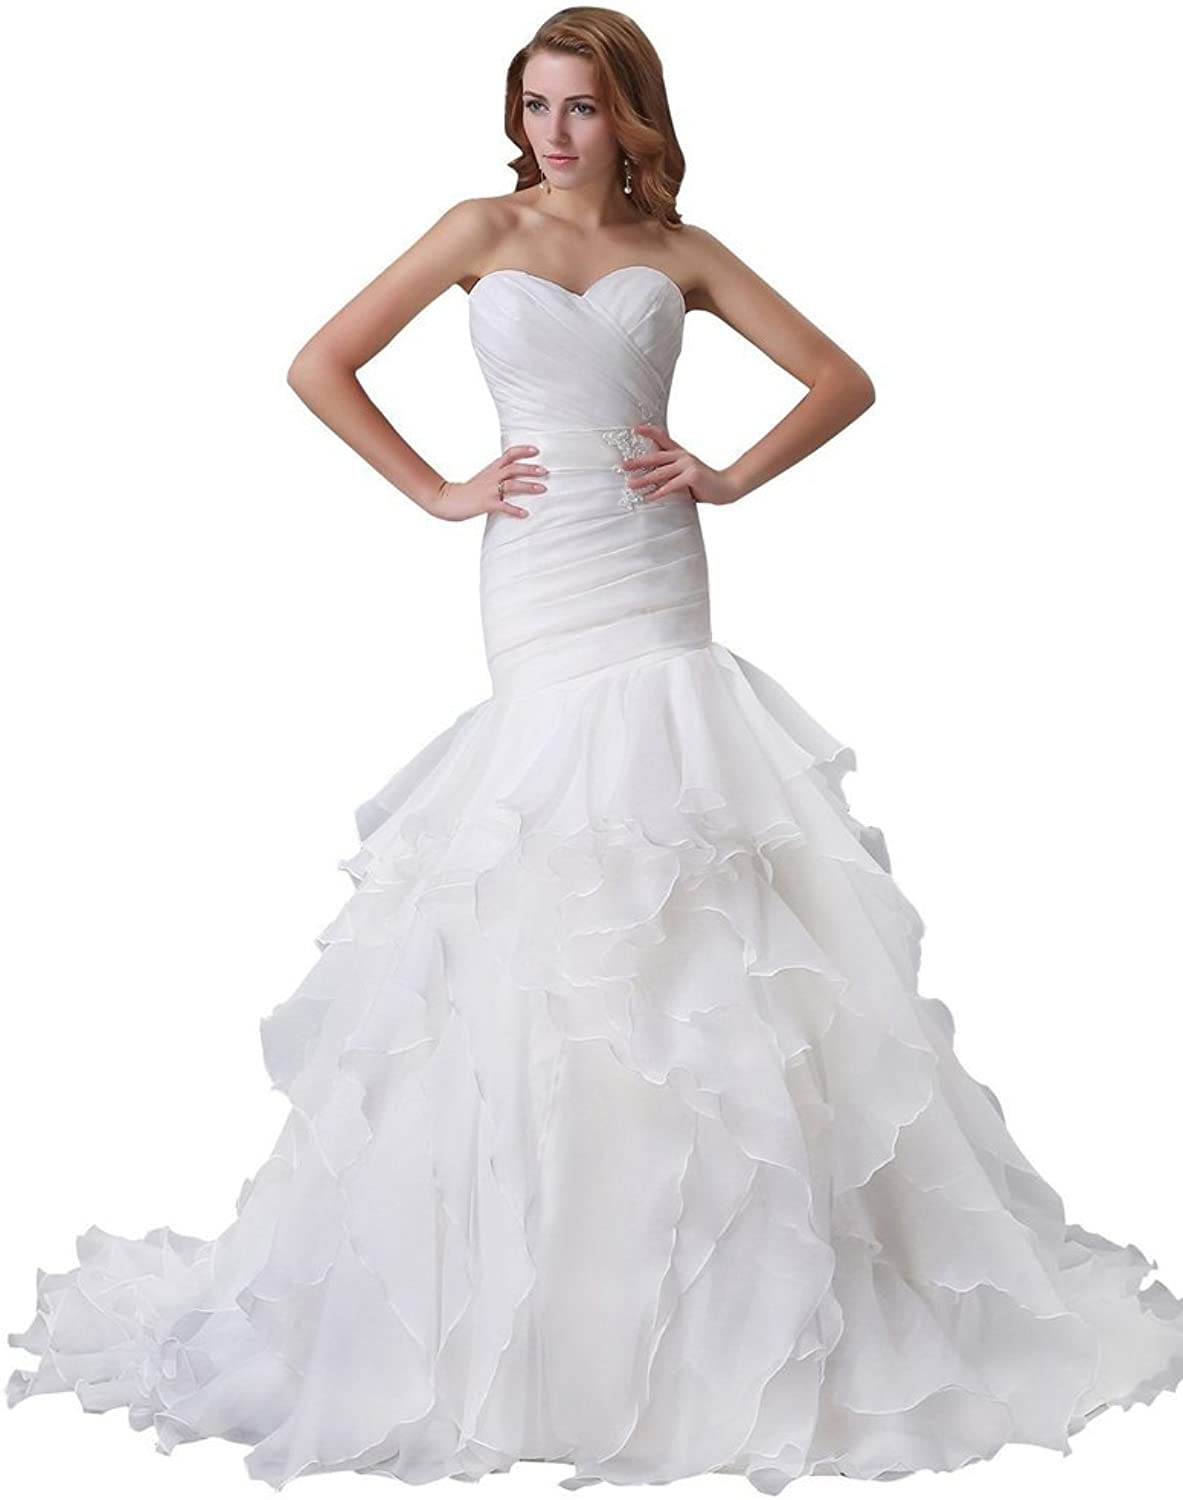 BessWedding Long Wedding Dresses for Brides Mermaid Wedding Gowns with Ruffles